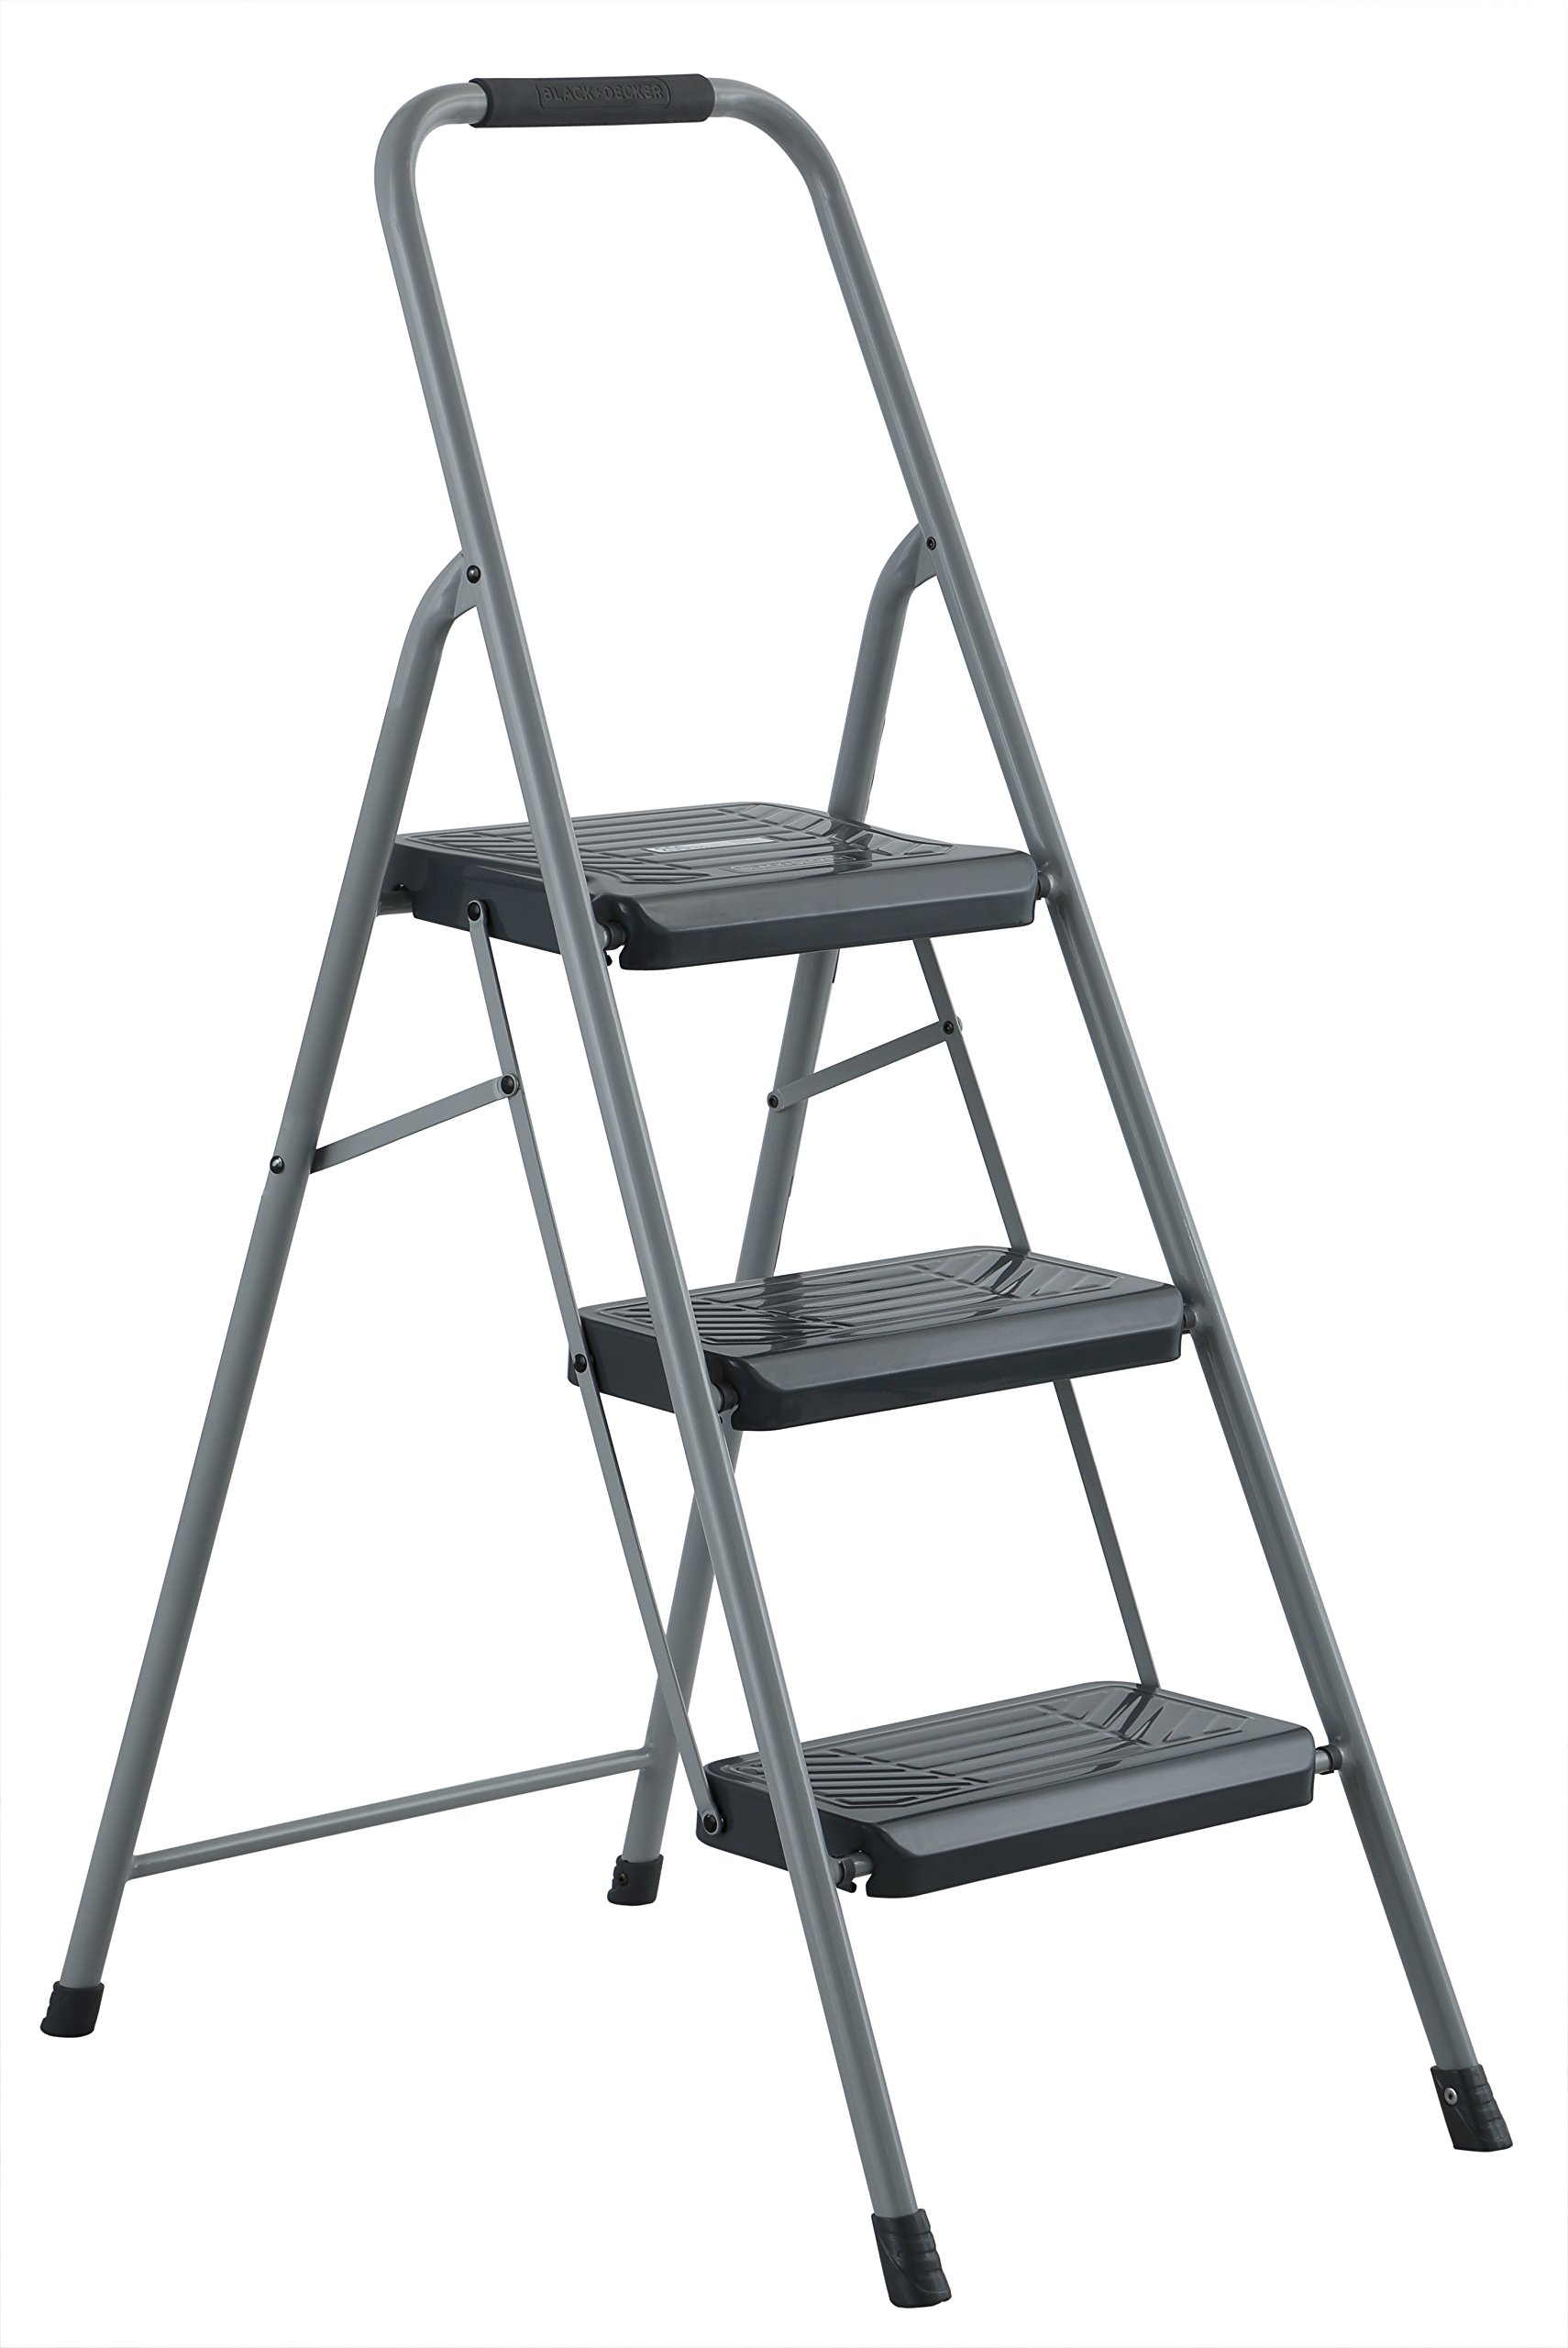 Black & Decker BXL4360-03 Two Step 200 lb Capacity Steel Stool, Gray